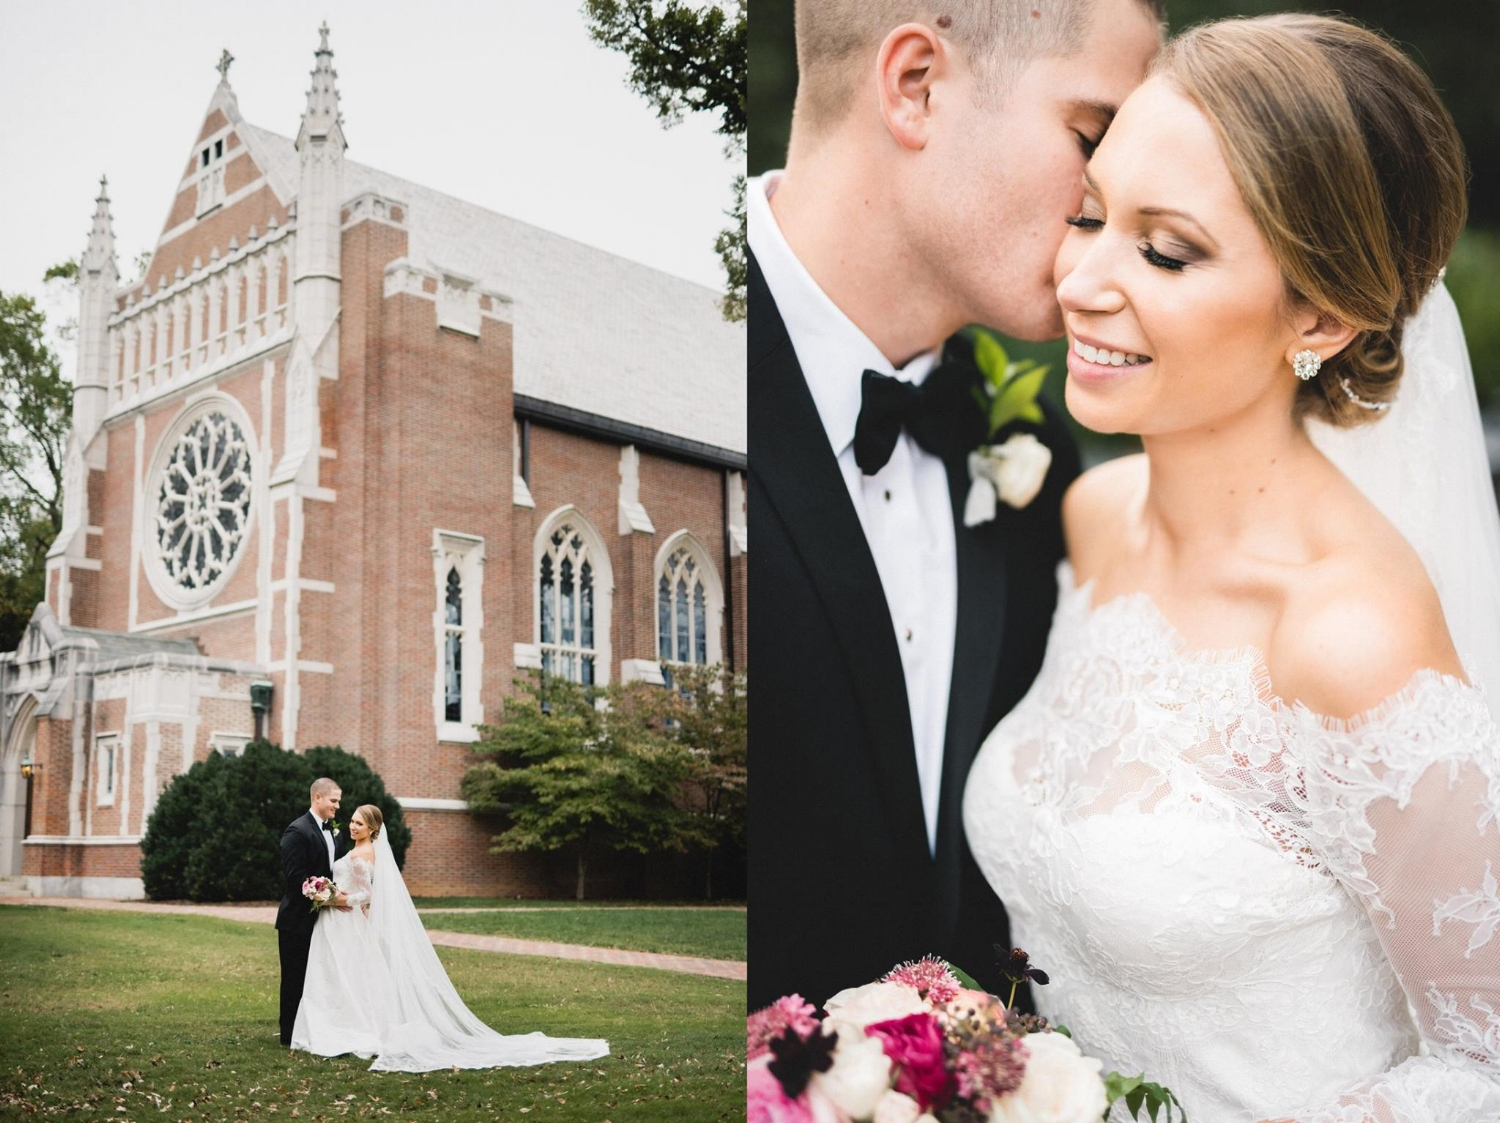 Mr. and Mrs. Alex Maffett at Henry Mansfield Cannon Memorial Chapel, University of Richmond, on October the Fourteenth.   Photography by Allison Kuhn Creative. Allison and Travis have photographed weddings all over the country. They are passionate about traveling, experiencing new things, and expanding their horizons.